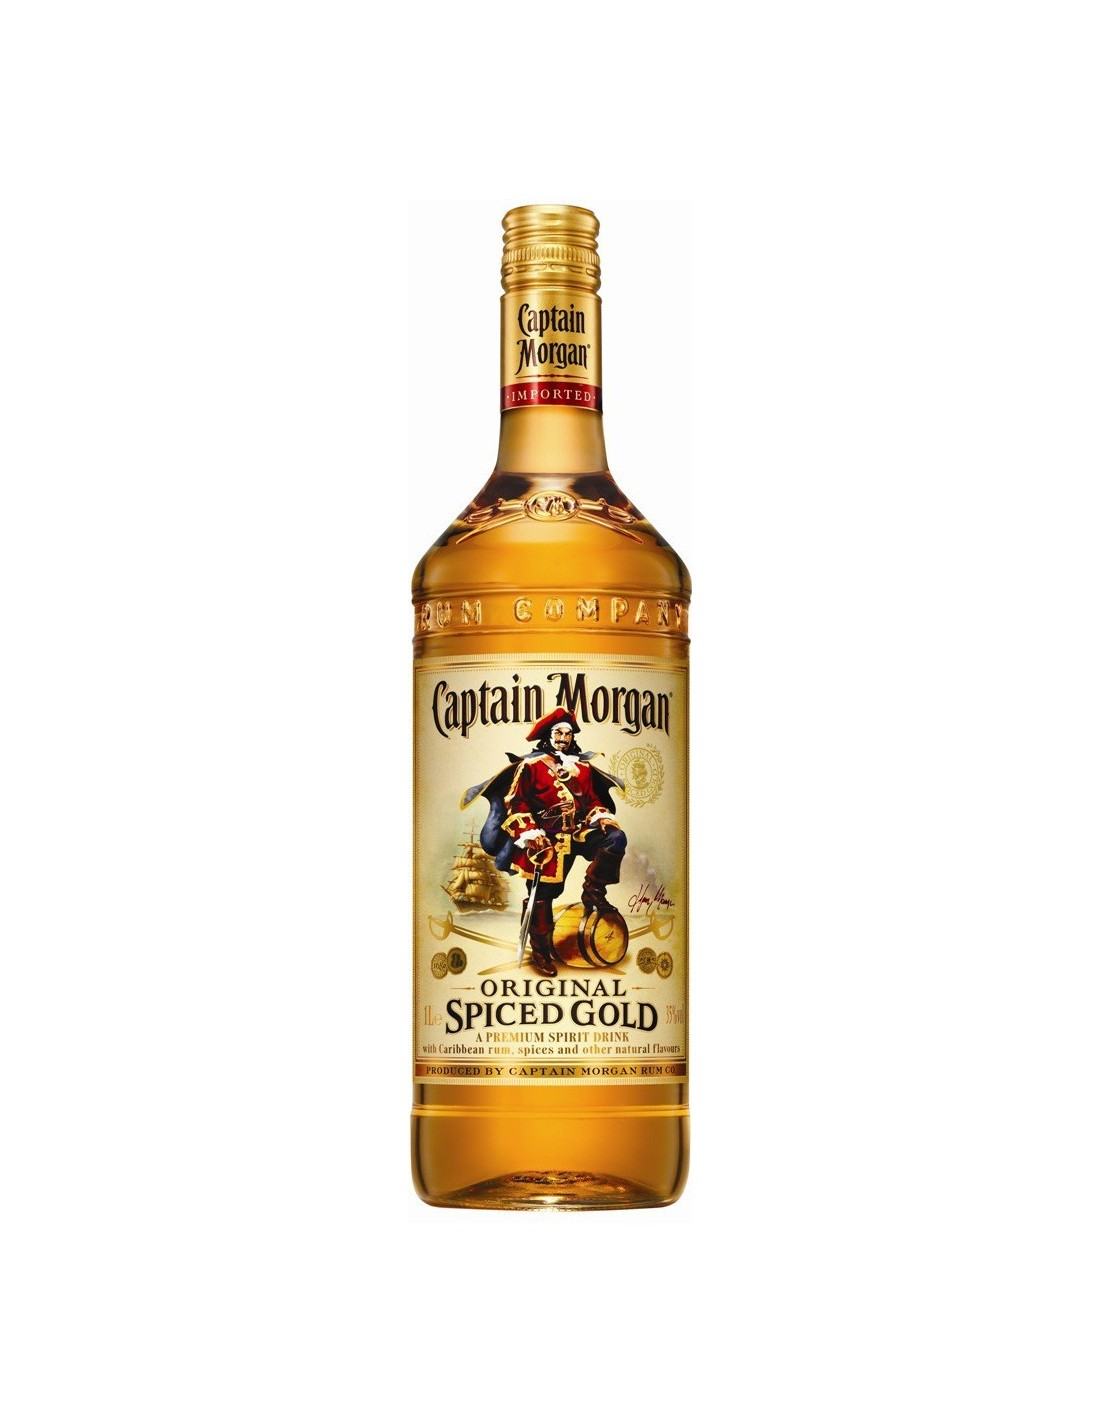 Rom Captain Morgan Spiced Gold, 35% alc., 3L, Jamaica